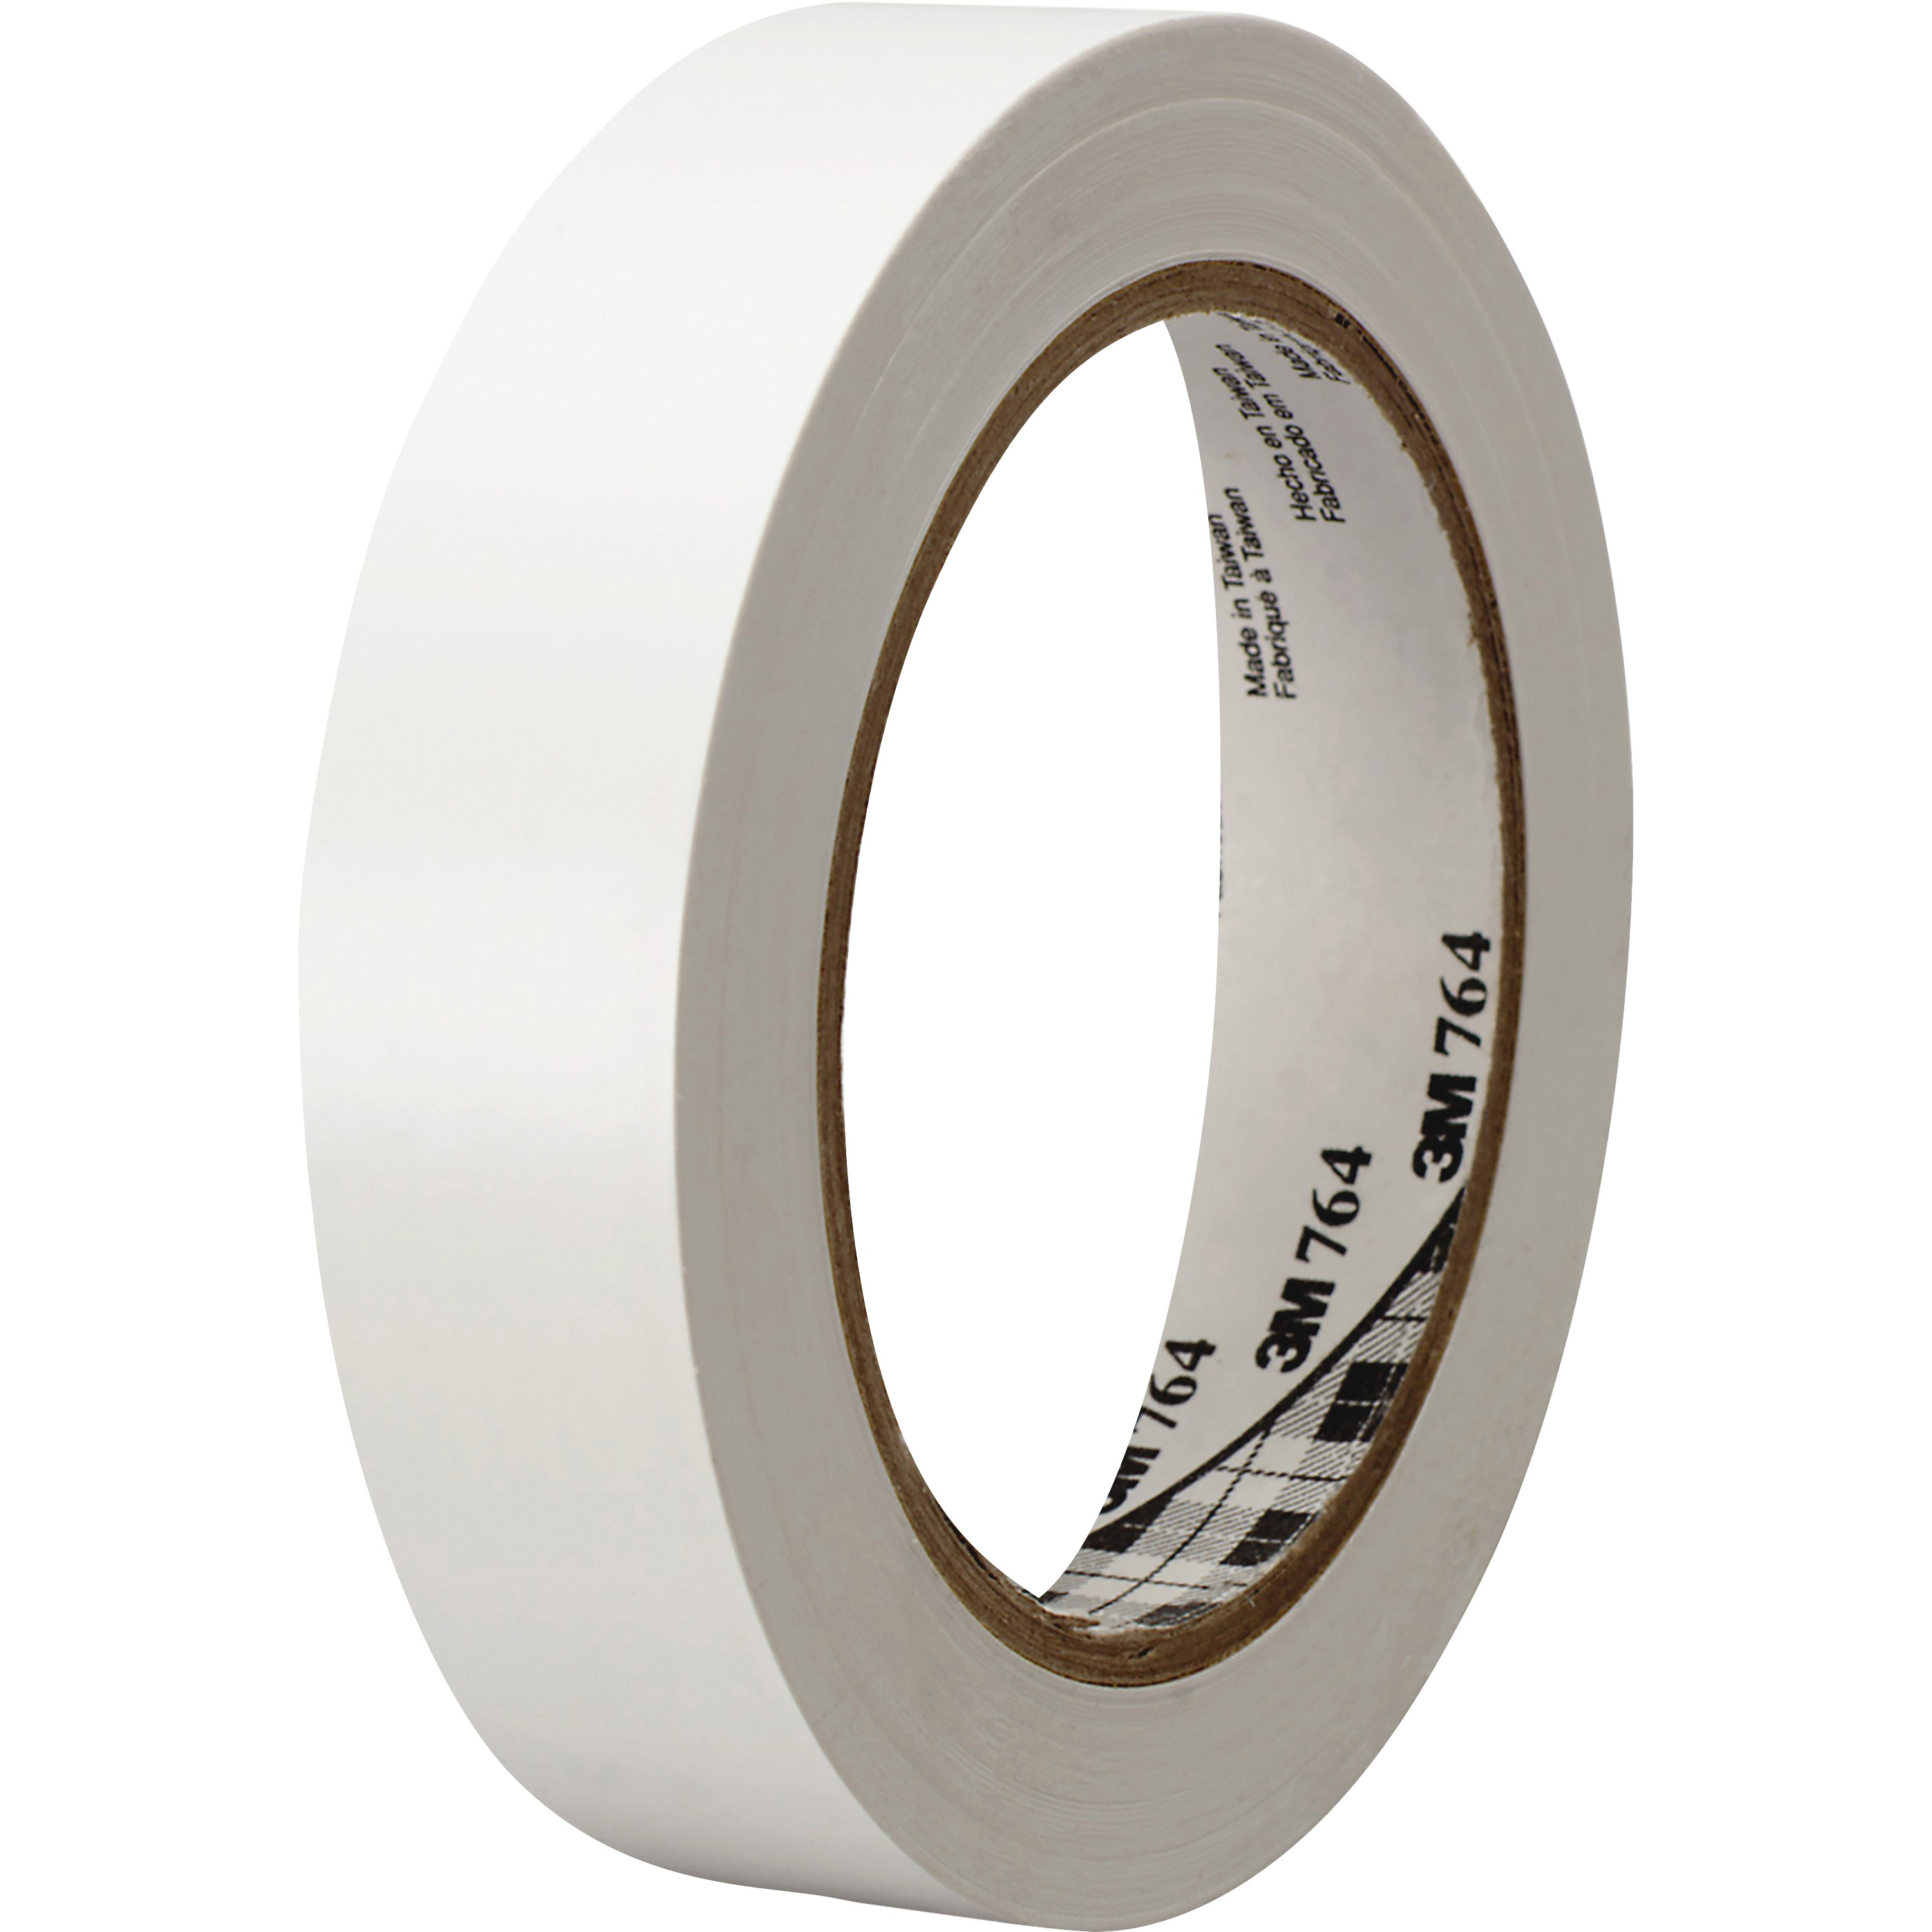 3M, MMM764136WHT, General-purpose 764 Color Vinyl Tape, 1 Roll, White